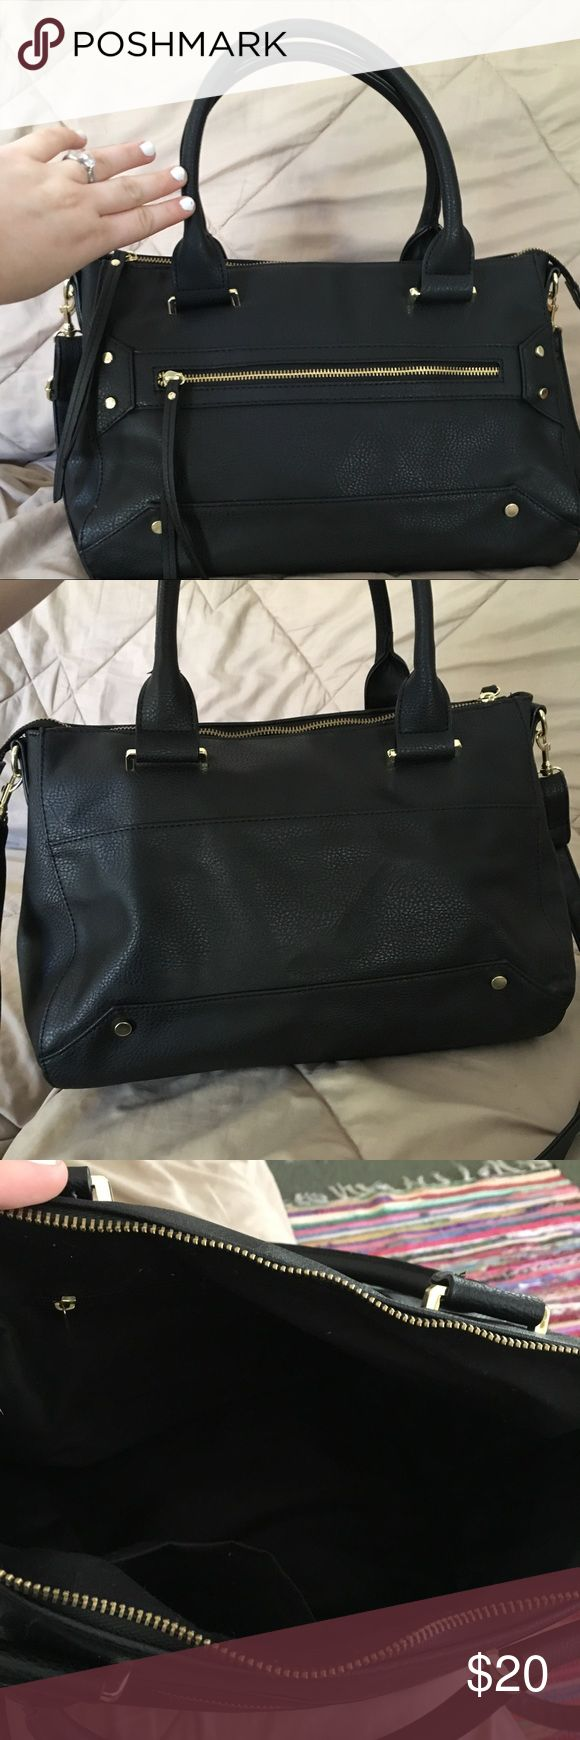 Black Target Purse (Like New) Used for maybe a week? It's way to big for what I carry (car keys, wallet, my iPhone...) so I got a smaller crossbody. This beautiful black bag cake from target. I don't have the tags or I'd return it Bags Satchels